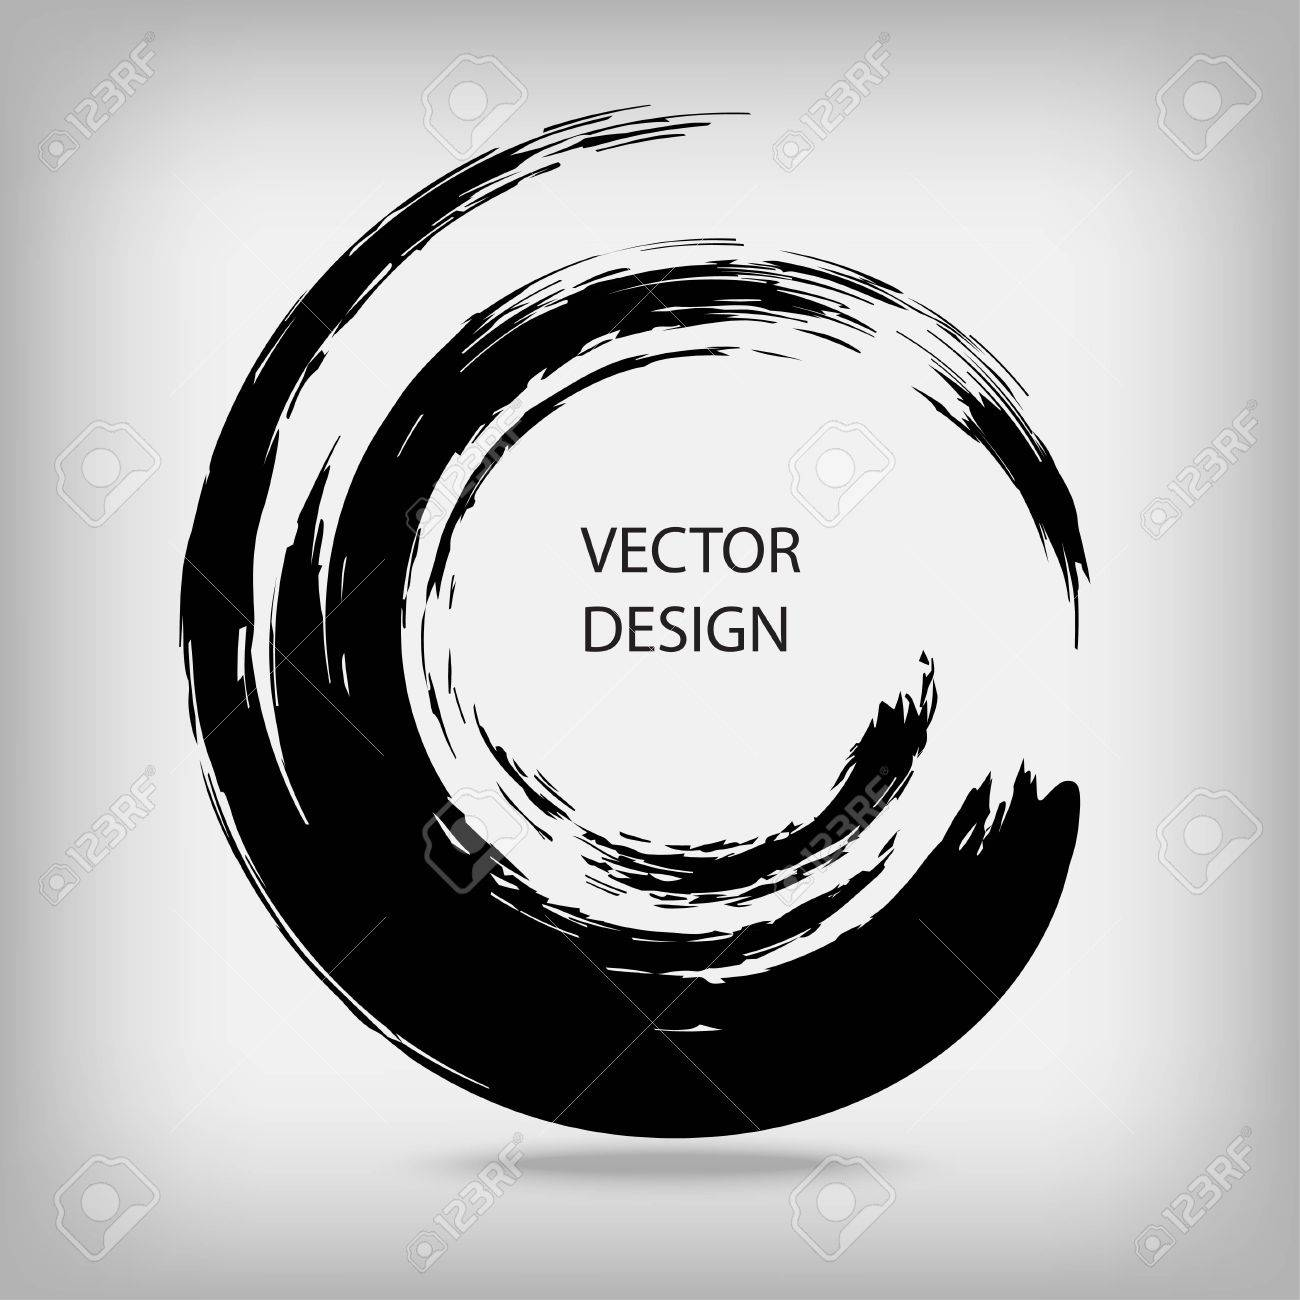 Hand drawn circle shape. Circular label, design element, frame. Brush abstract wave. Black enso zen symbol. Vector illustration. Place for text. - 64692129